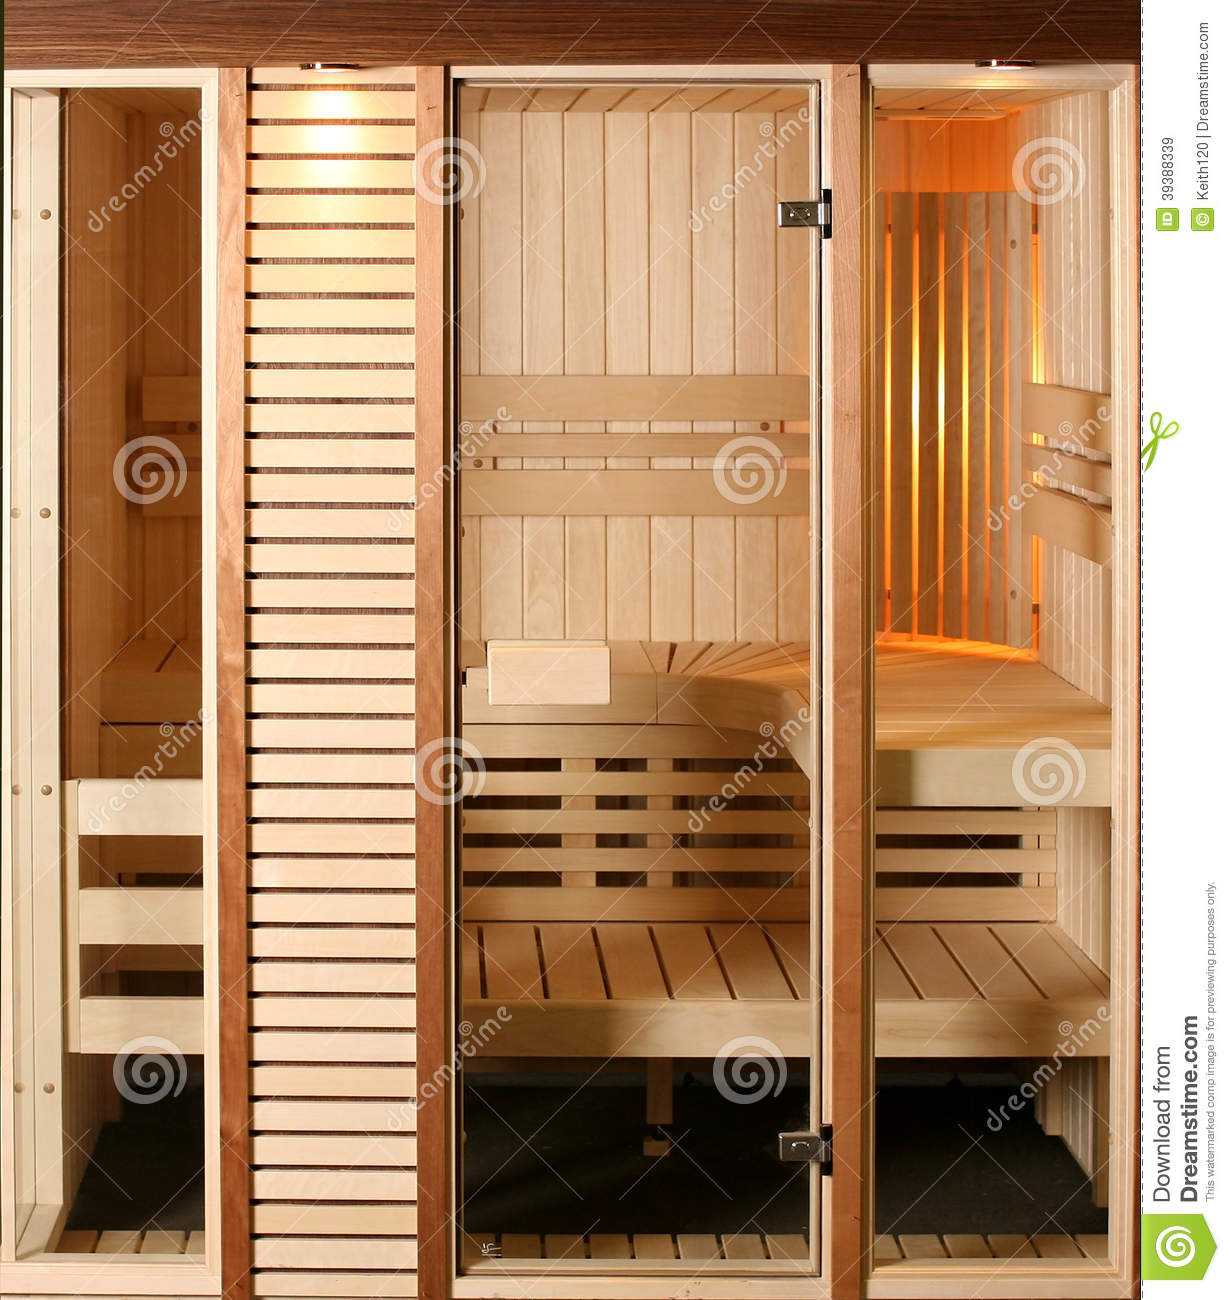 Infrared Sauna Cabin Stock Photo Image 39388339